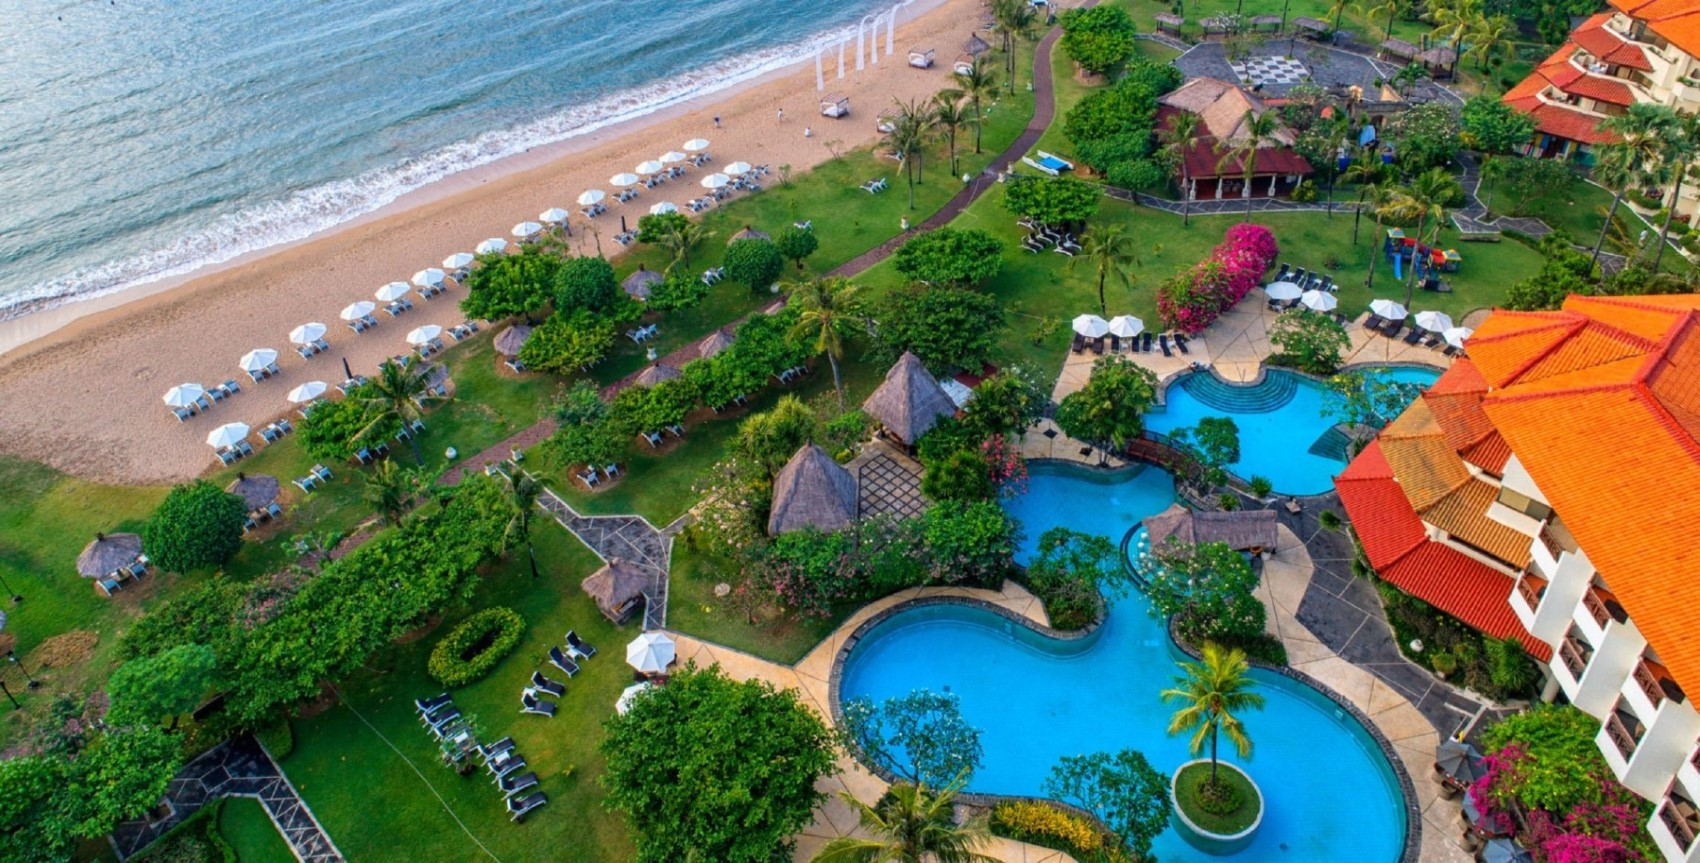 Living the lush life at a 5-star beachfront hotel in Bali!